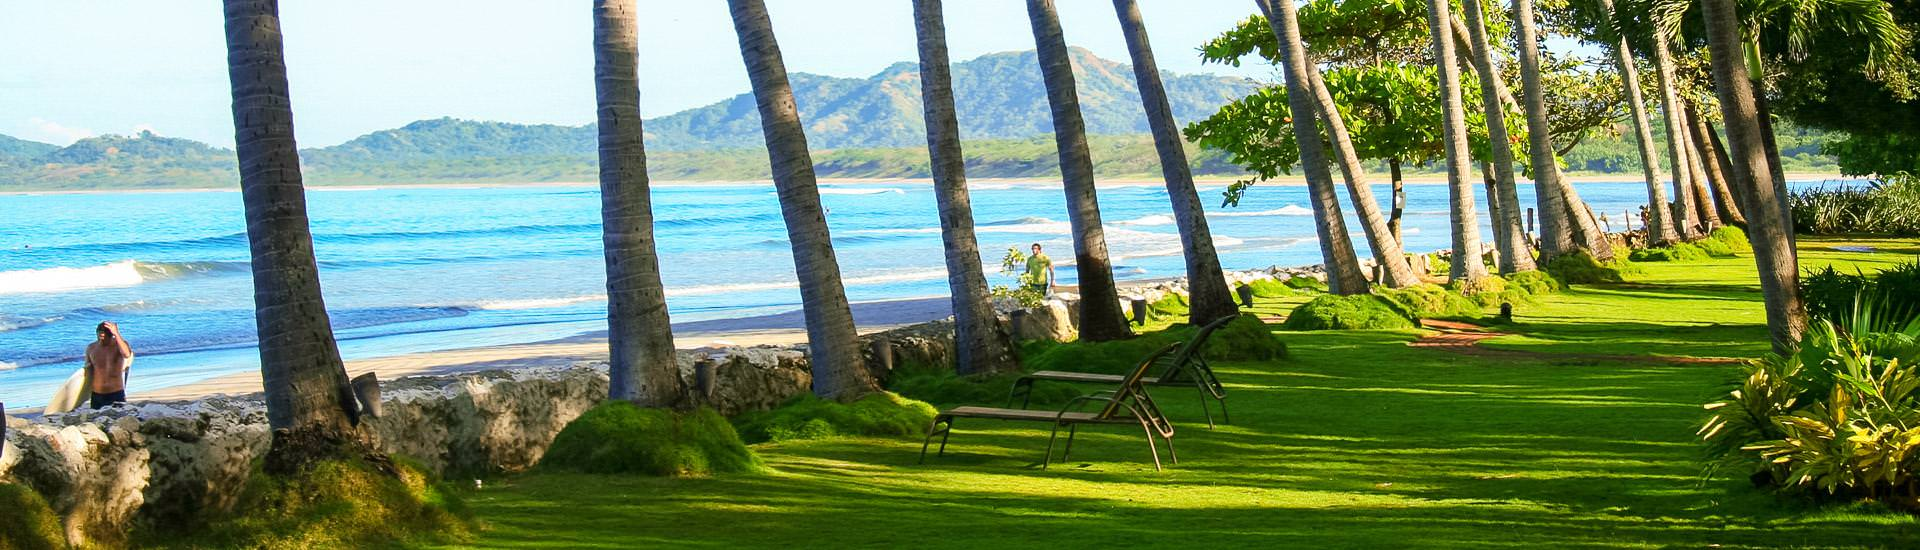 Tamarindo Diria Beach & Golf Resort (© Tamarindo Diria Beach Resort / Chamäleon)